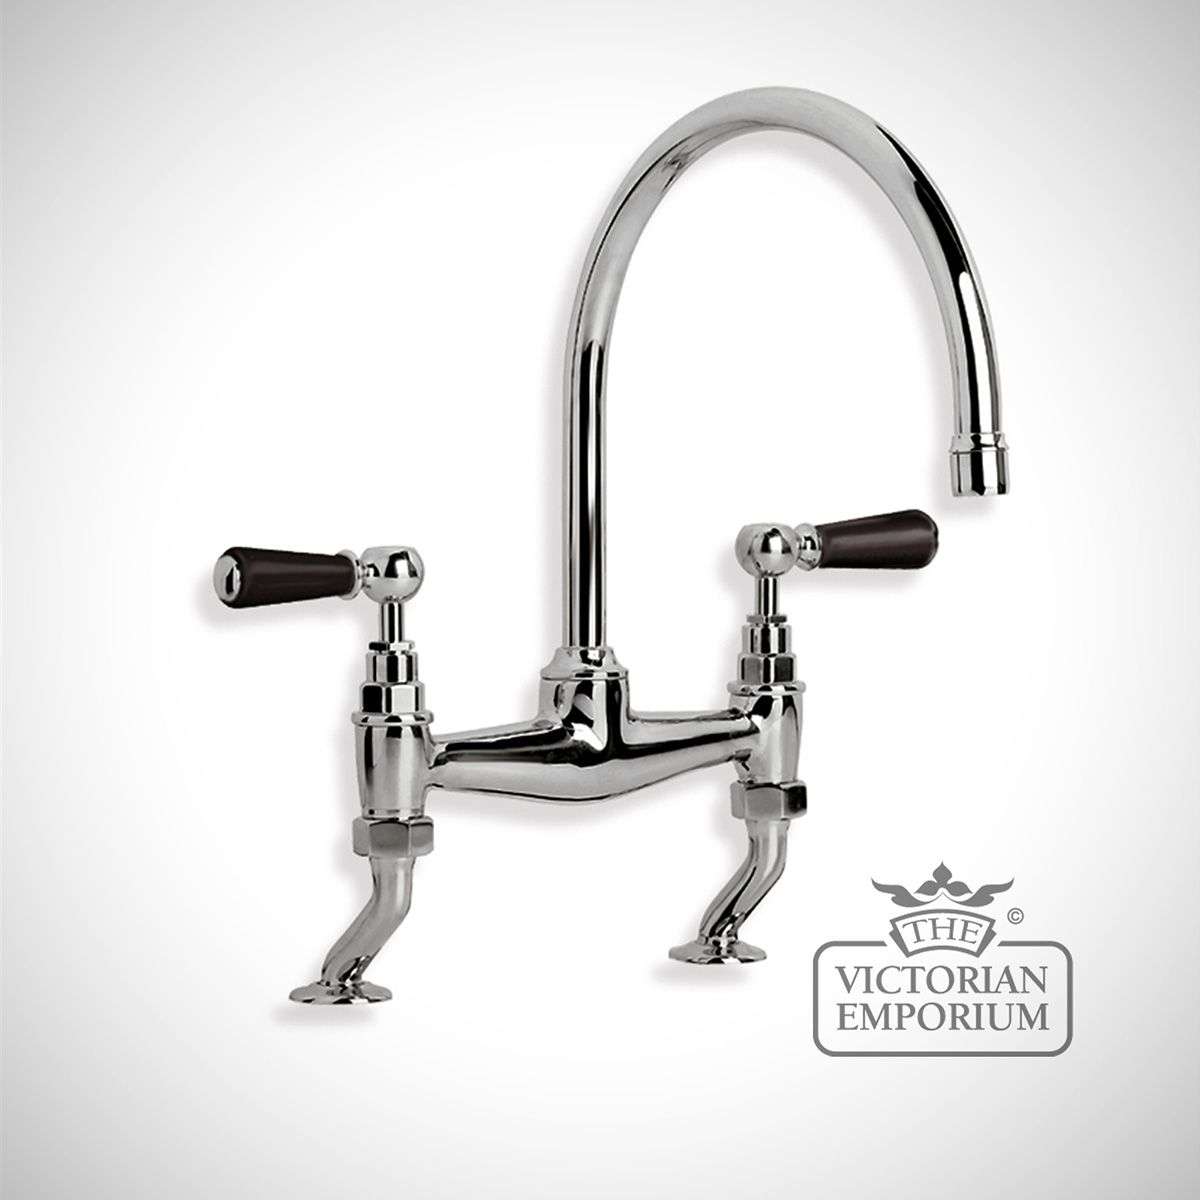 Bathroom Taps Black : Black Ceramic Lever Bridge Mixer Deck Mounted Kitchen taps and plugs